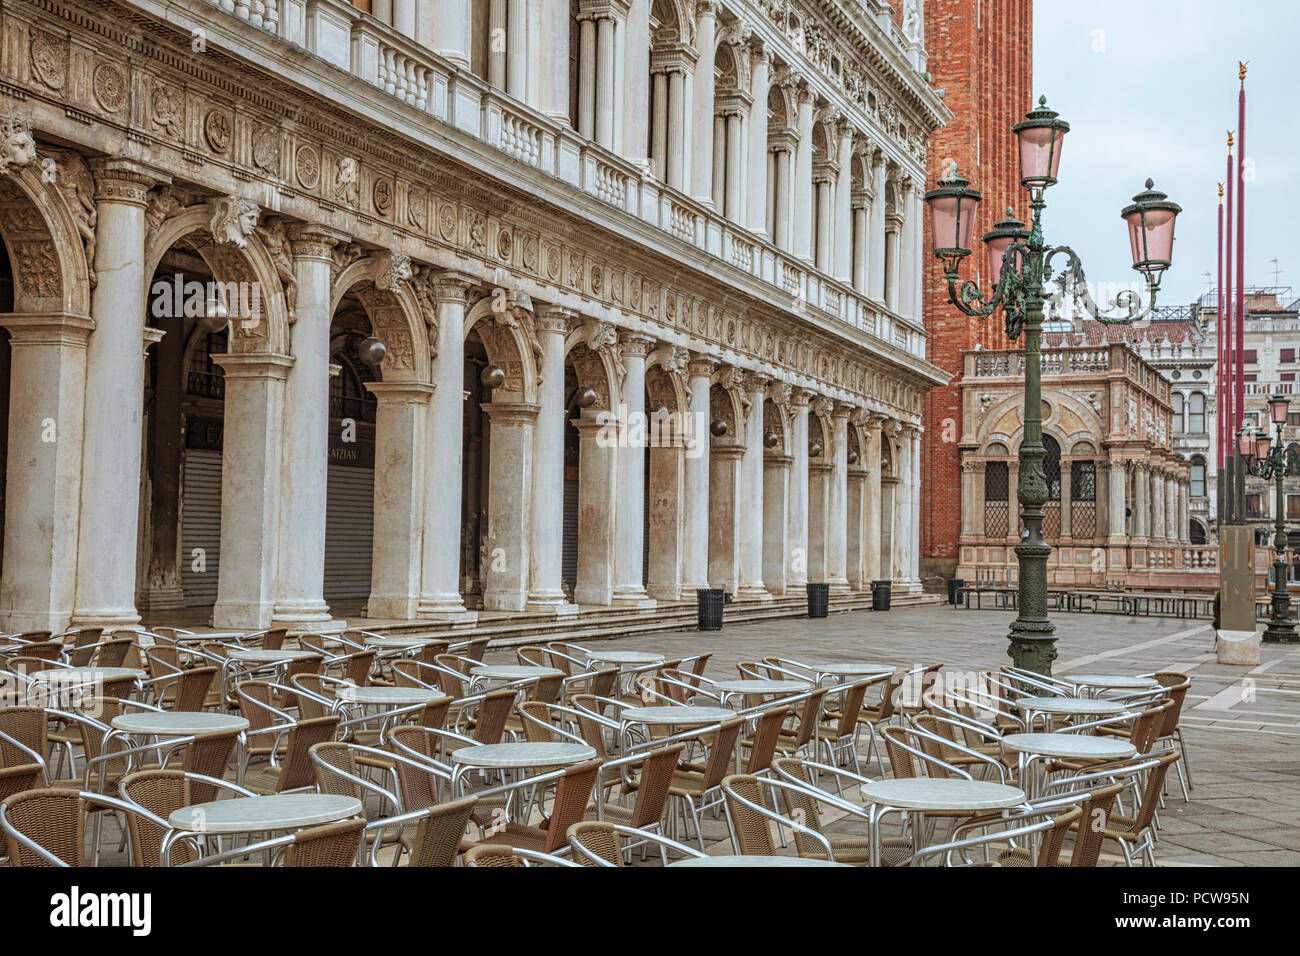 A café on St. Mark's square in Venice, italy - Stock Image